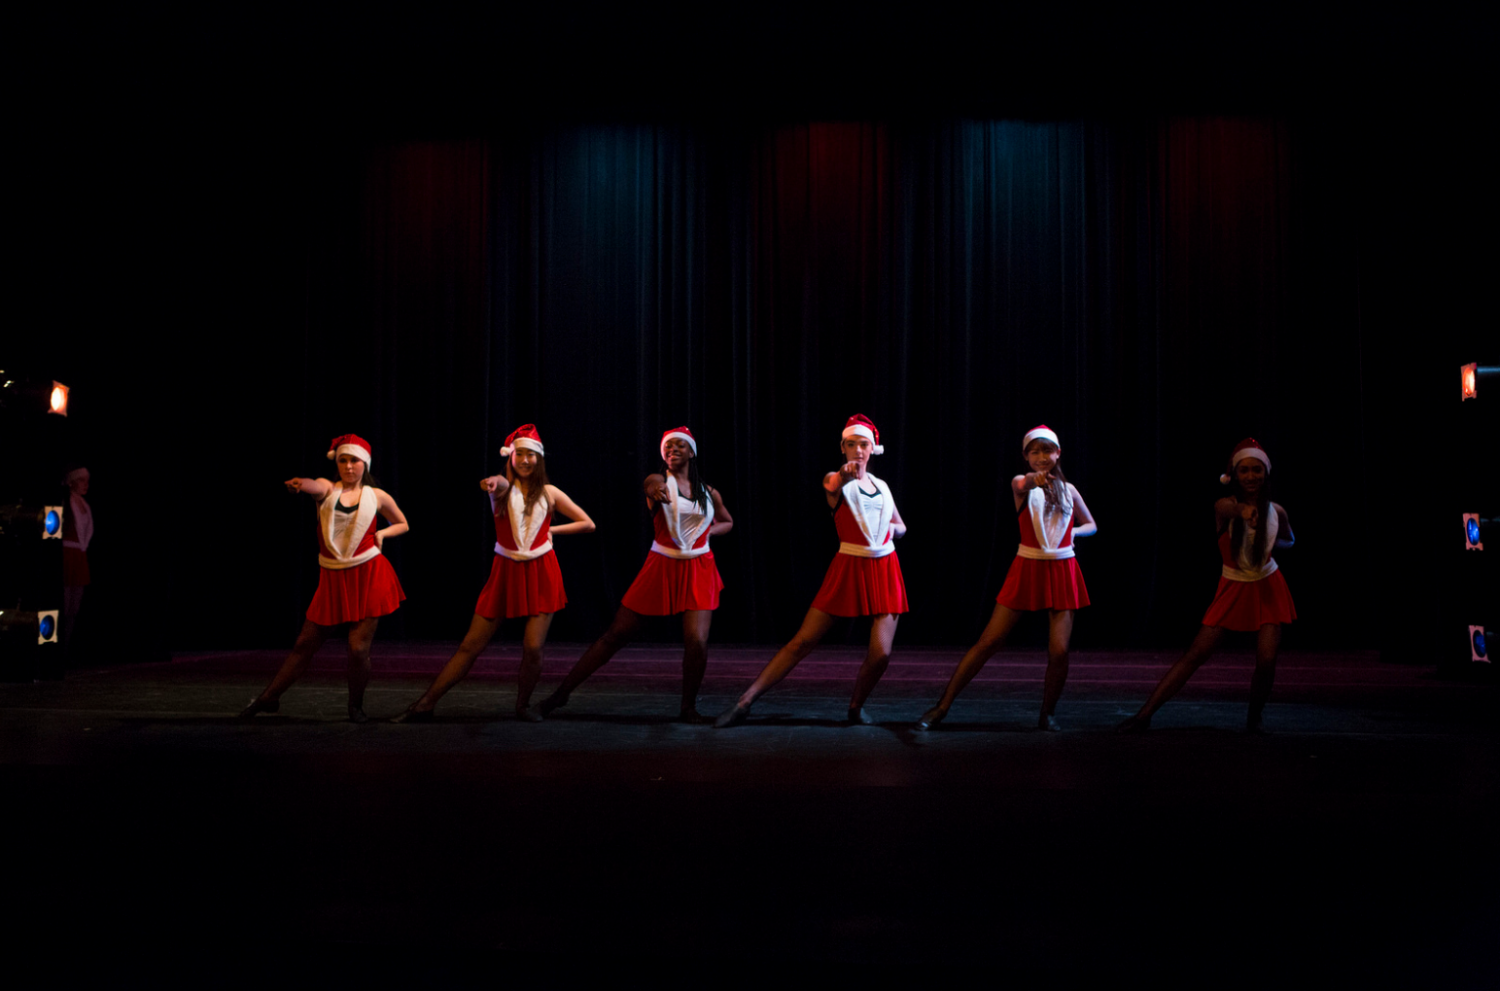 Gabby (far left), Destiny (third from left), and Makenna (fourth from left) perform as Rockettes in the fall dance concert Contagion. Credit: Flickr.